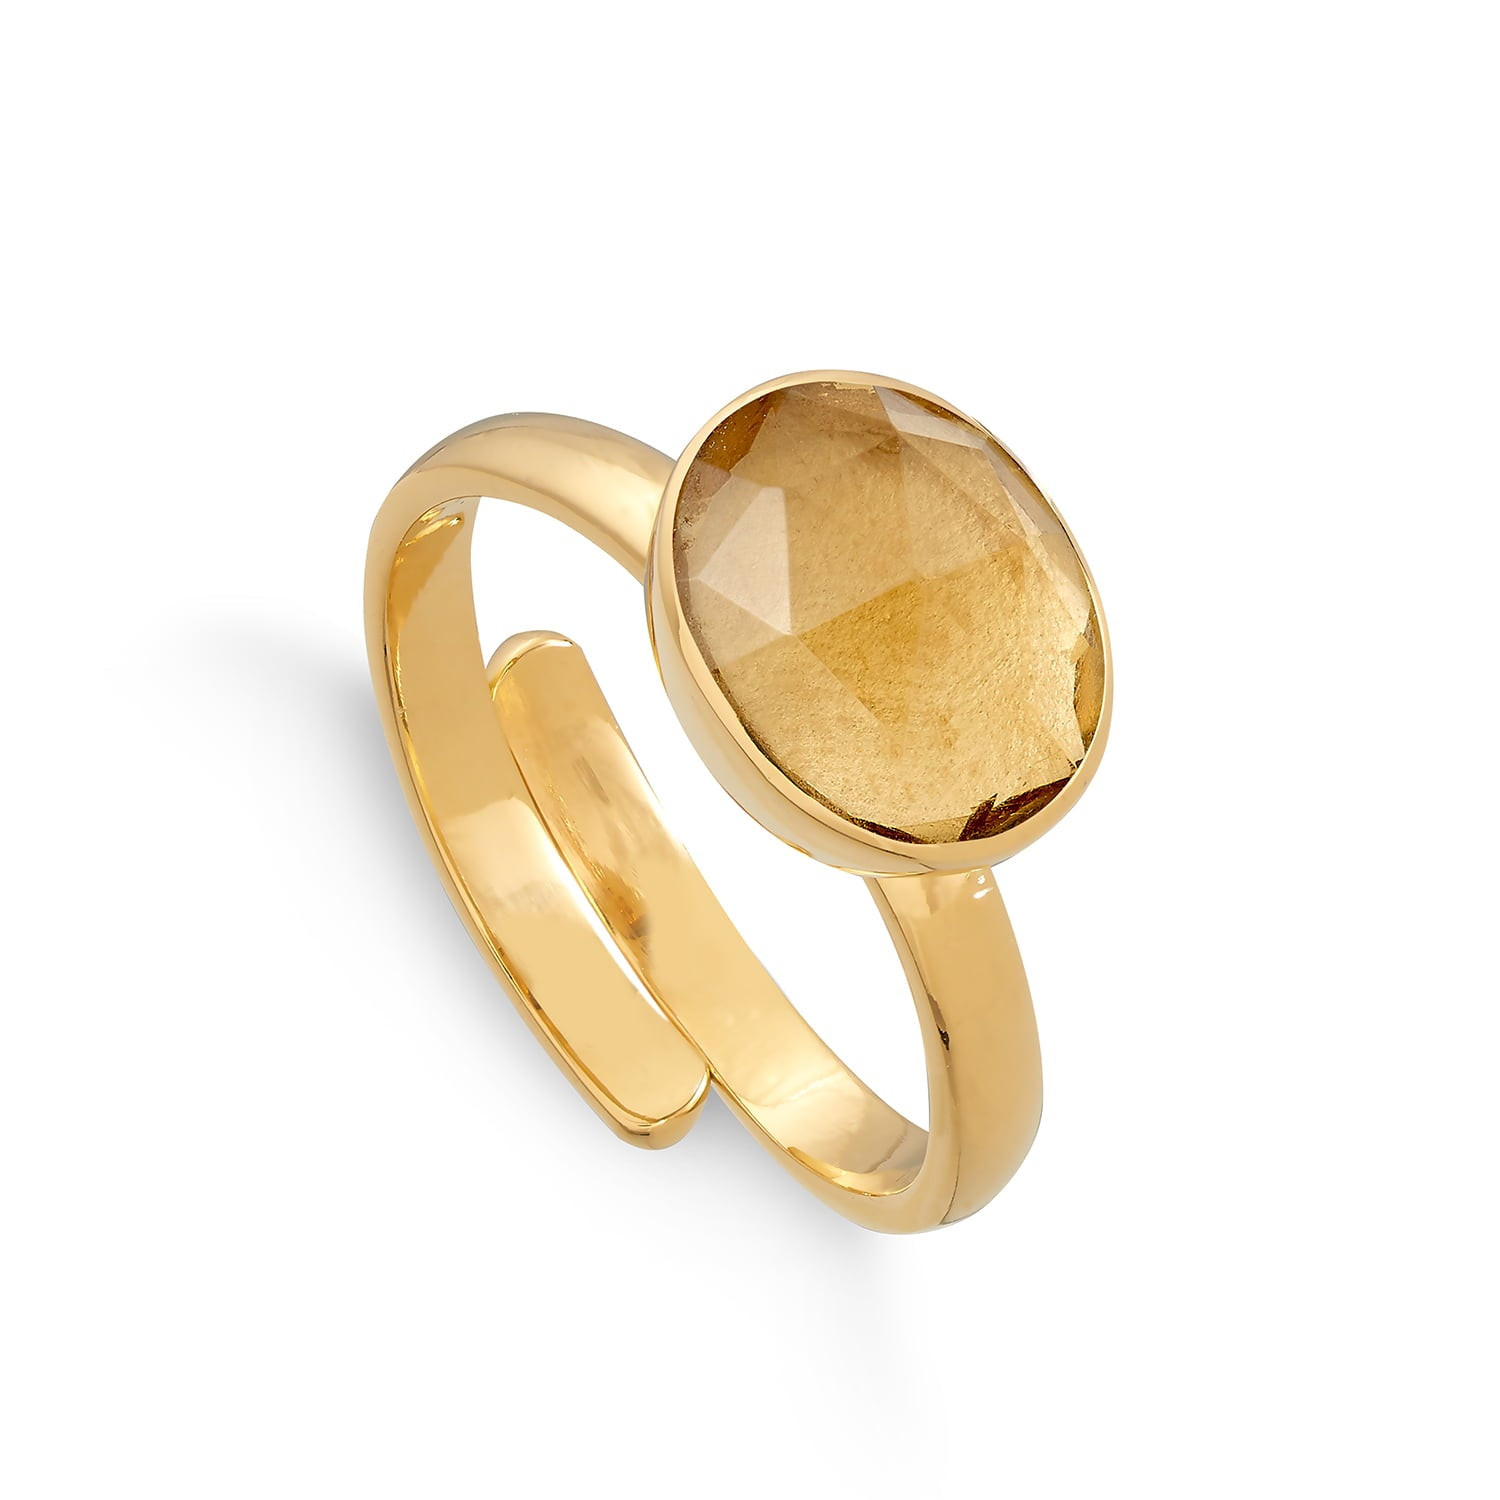 ATR02CHV-Atomic-Midi-Lemon-Quartz_Gold-Vermeil-SVP-Adjustable-Ring